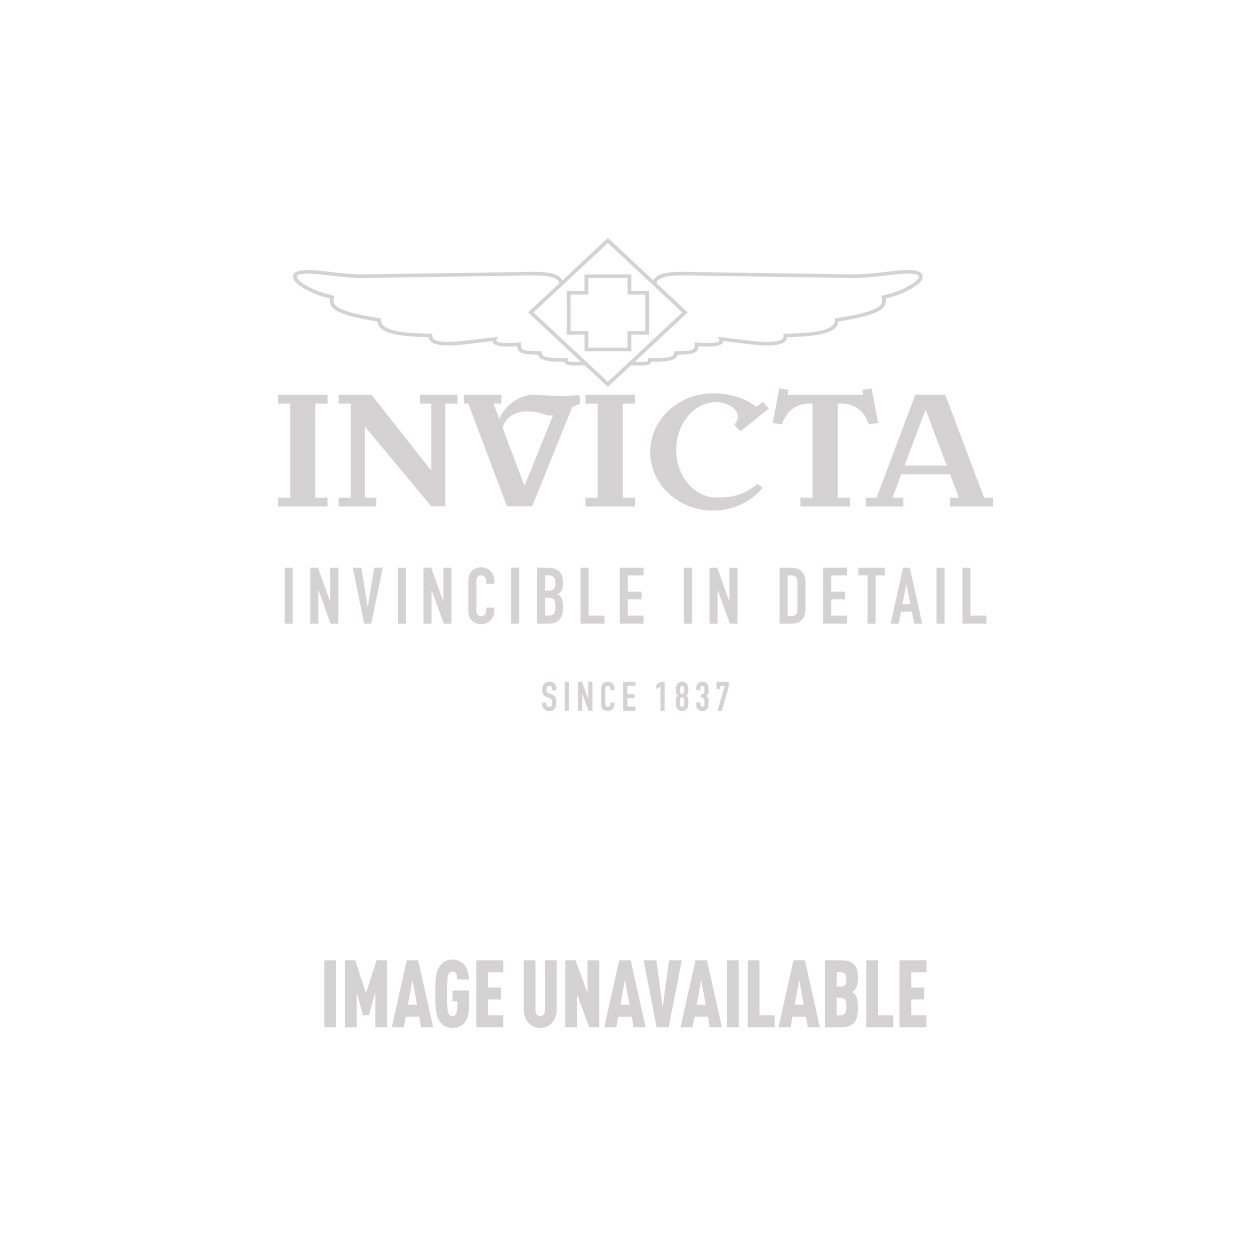 Invicta Cuadro Swiss Made Quartz Watch - Rose Gold case with Rose Gold tone Stainless Steel band - Model 1694